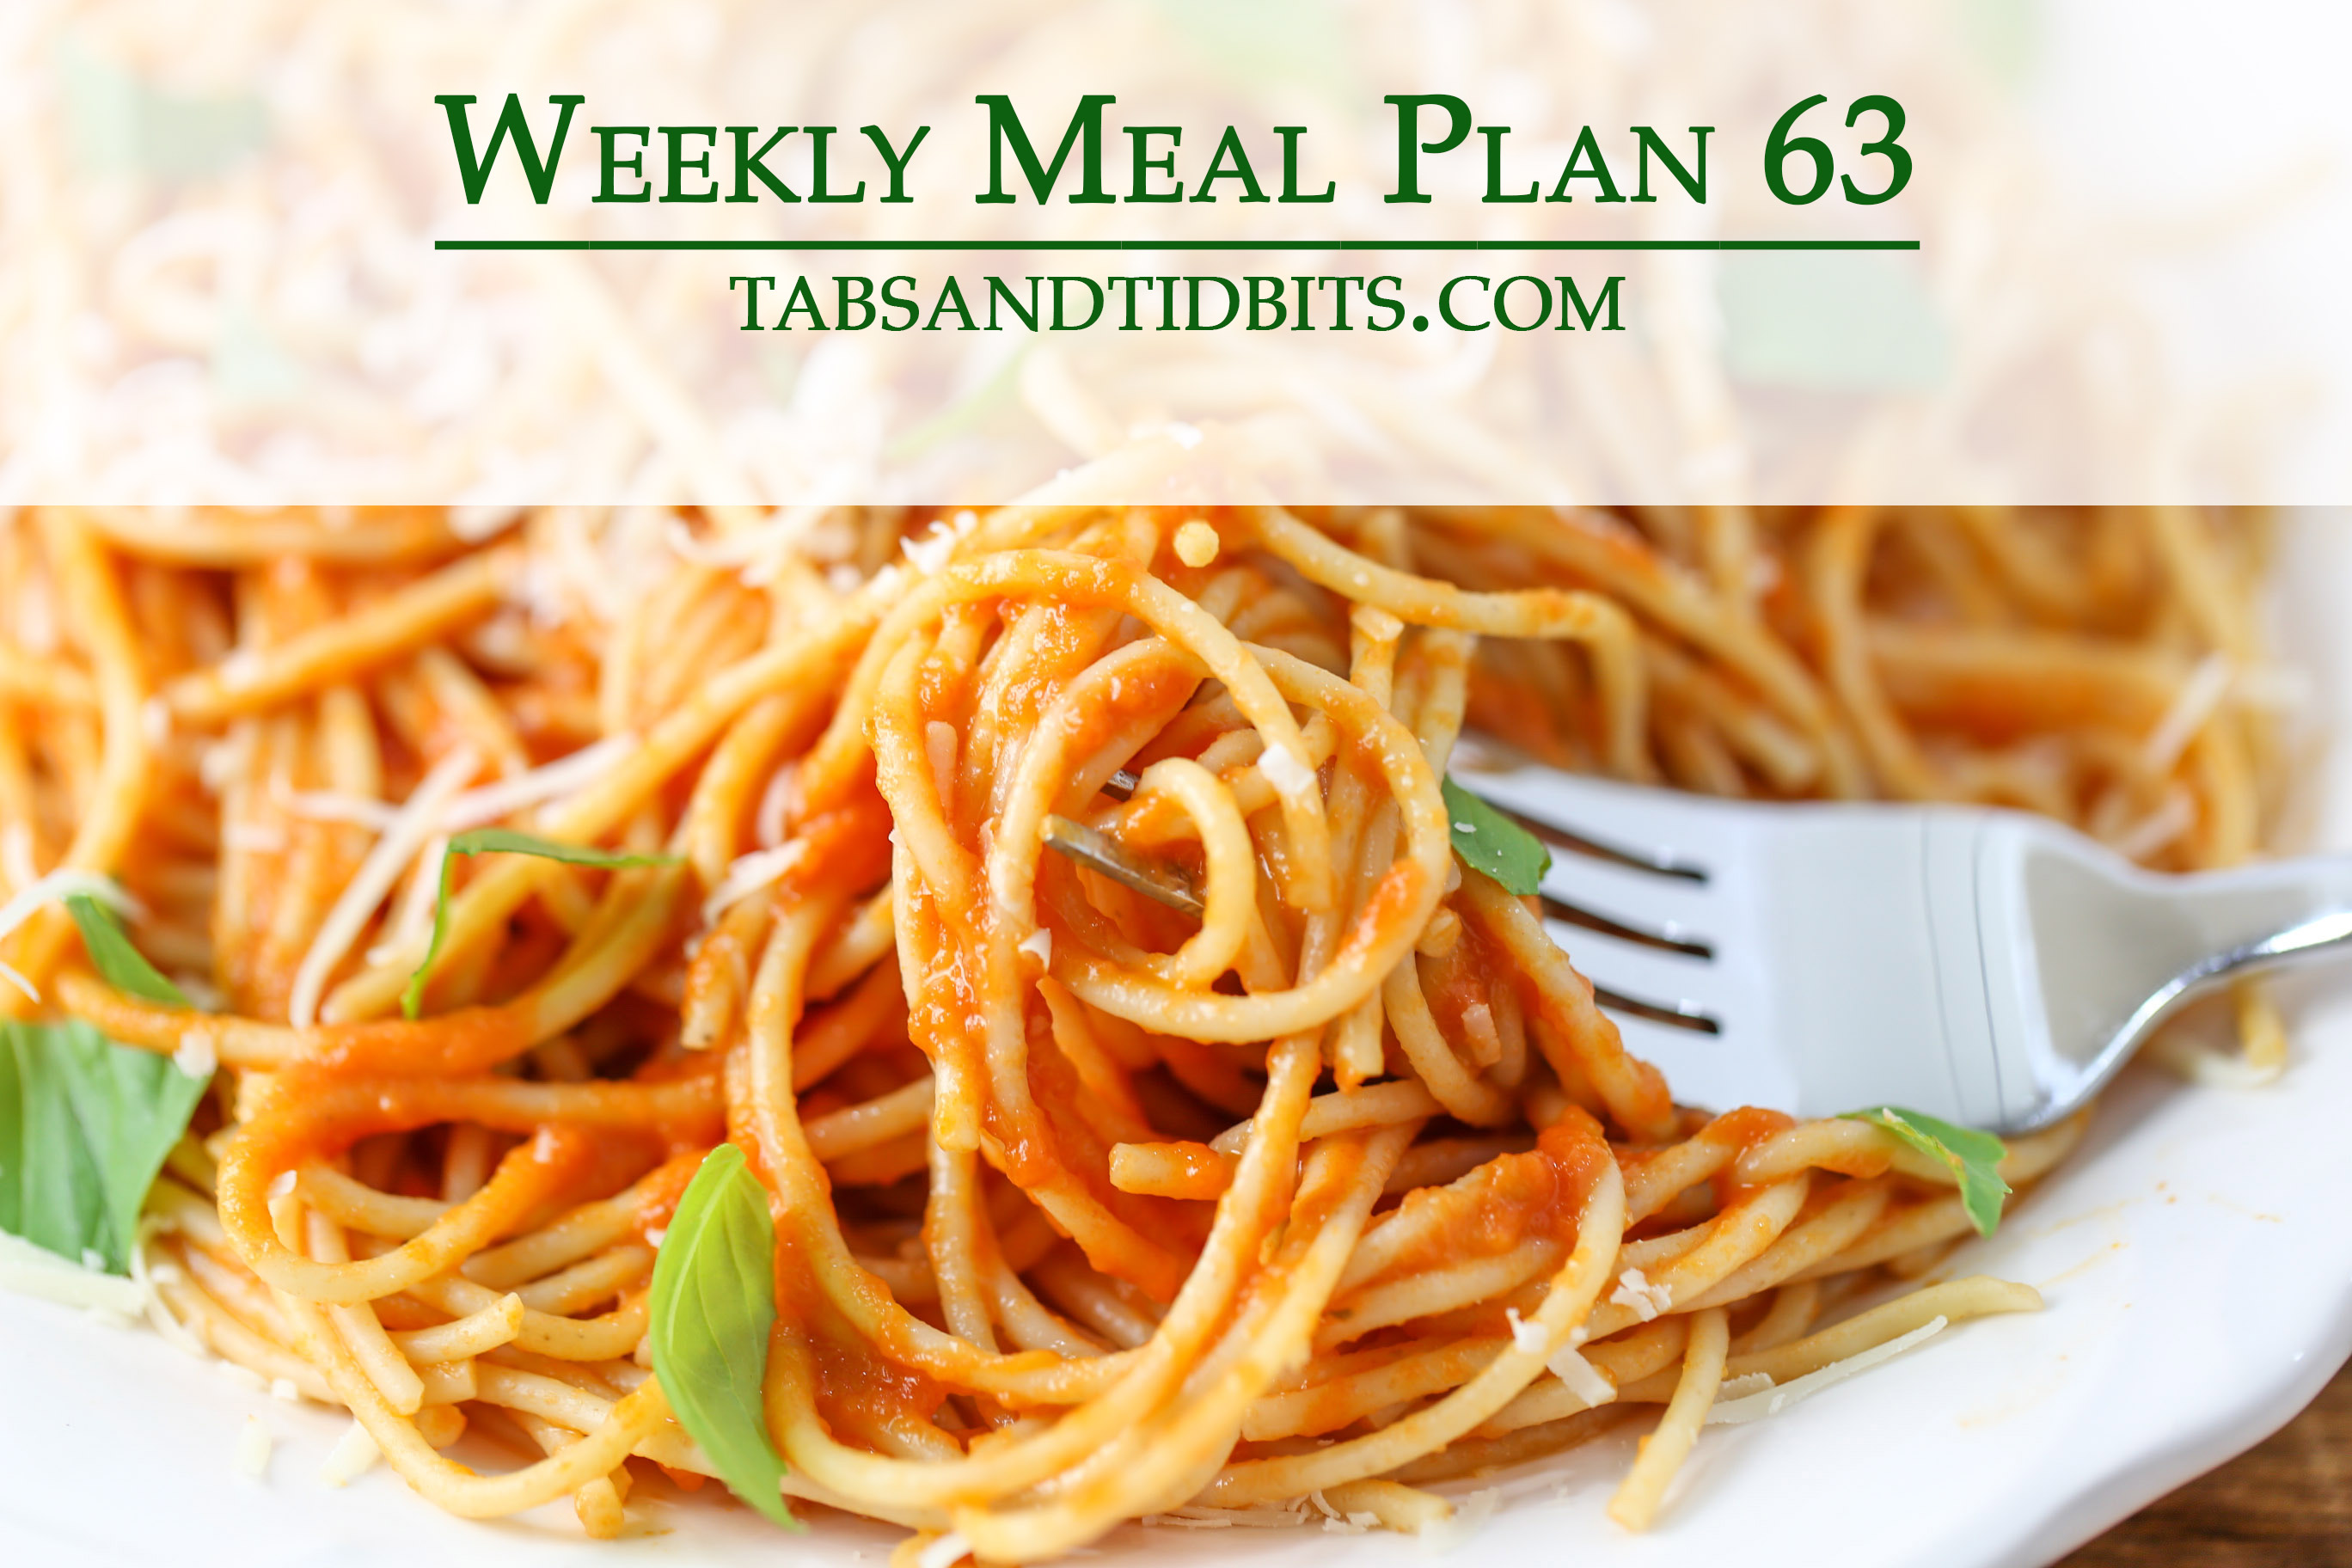 Easy to make vegetarian meal plan!